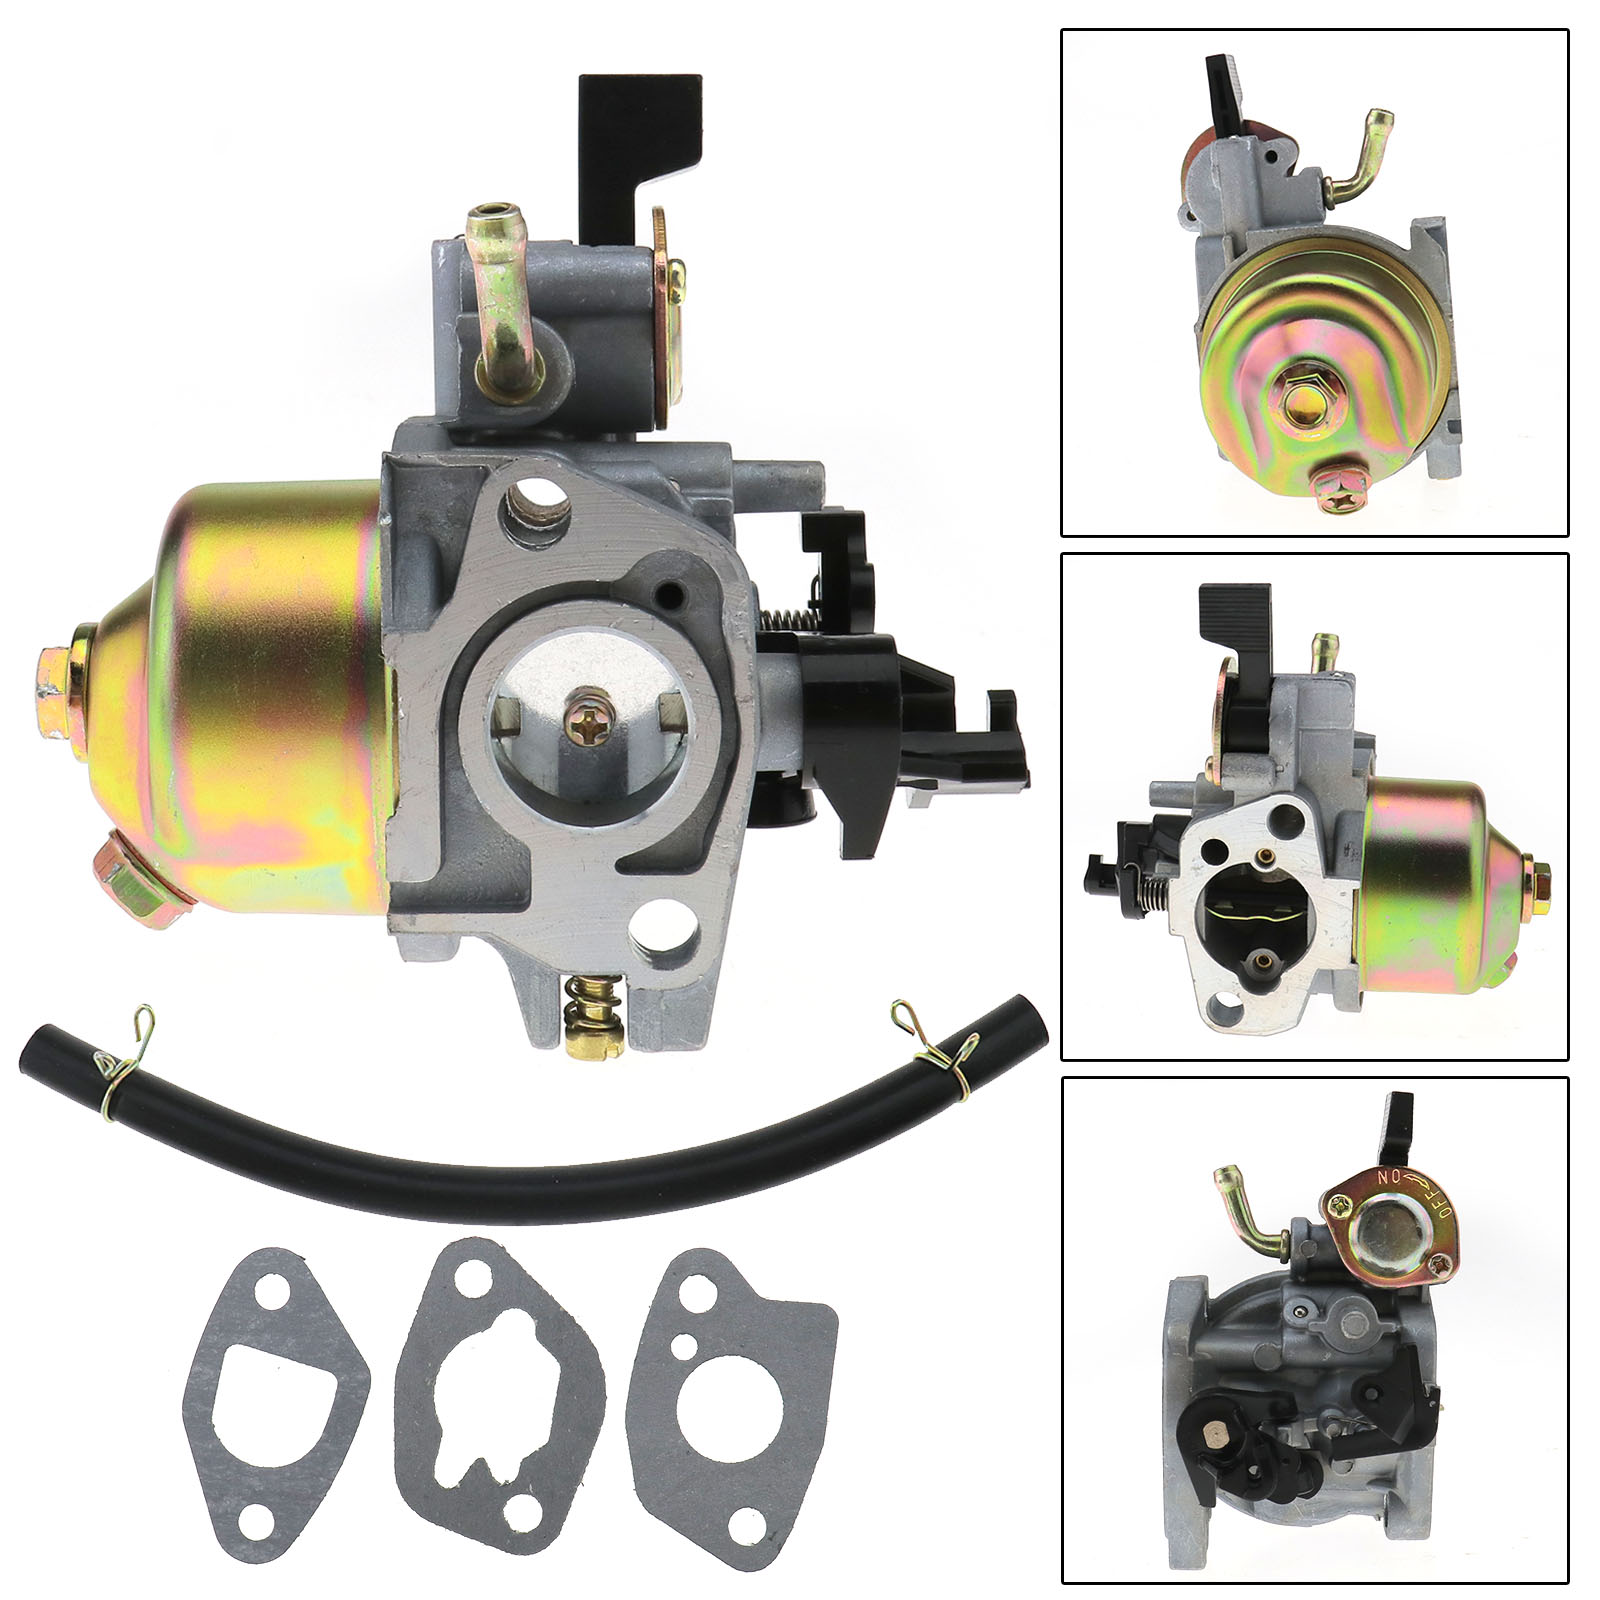 carburetor carburetor carb for honda gxv120 hra194 lawn. Black Bedroom Furniture Sets. Home Design Ideas